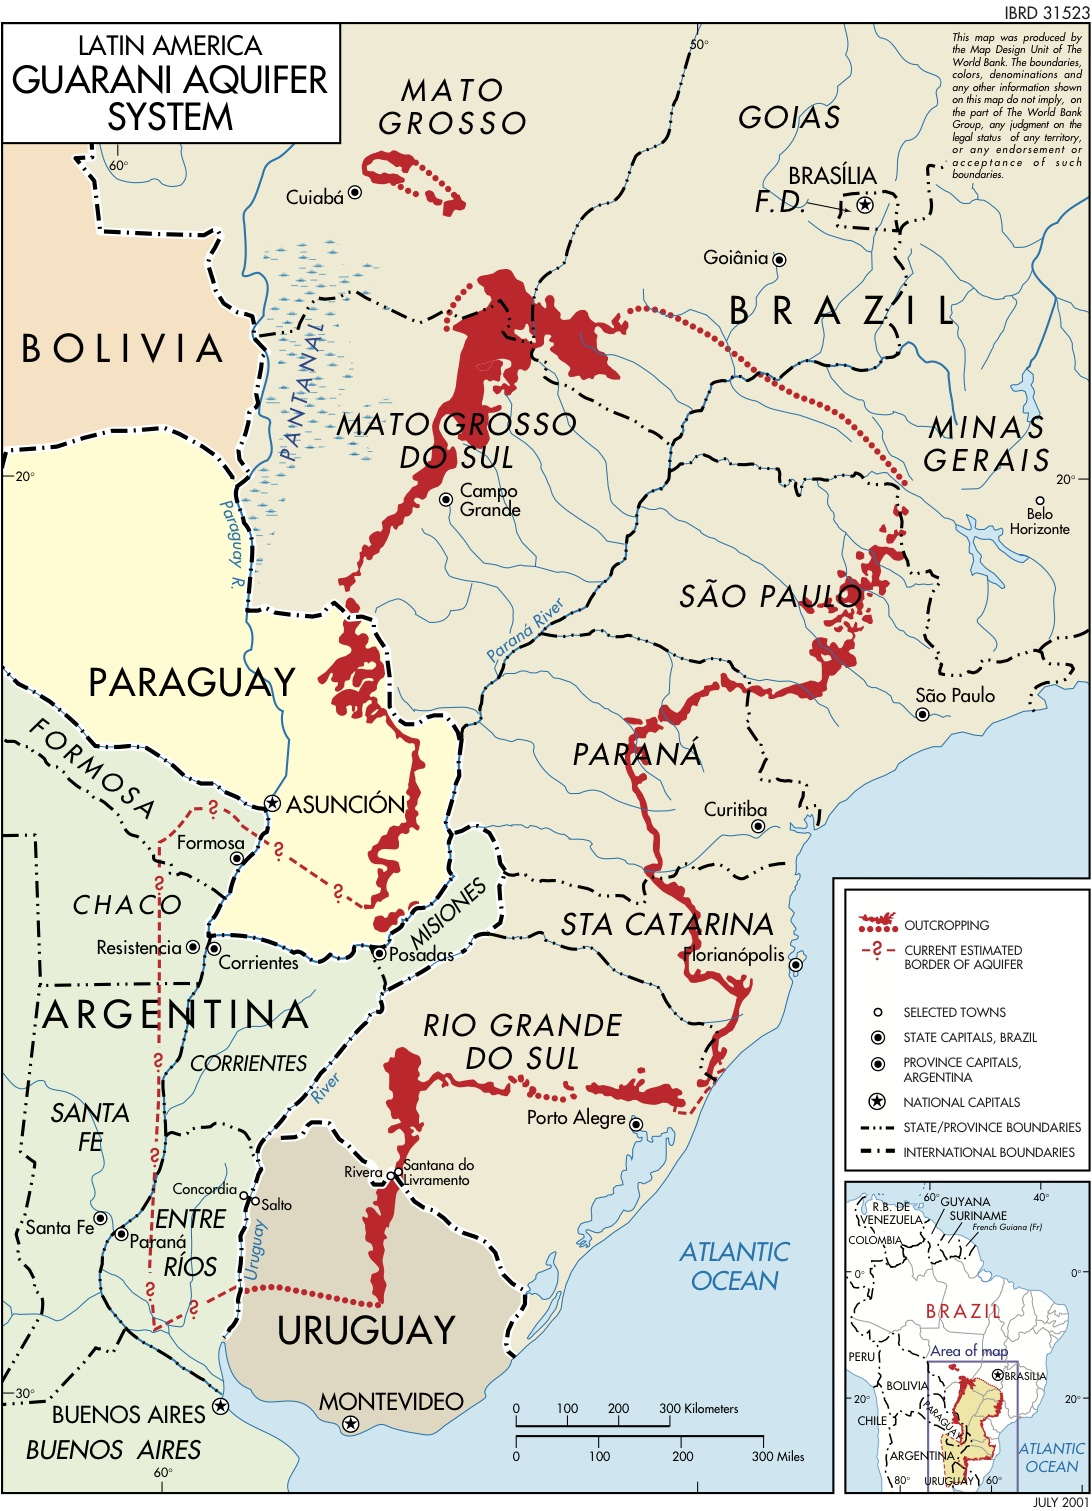 the guarani aquifer a little known water resource in south america gets a voice